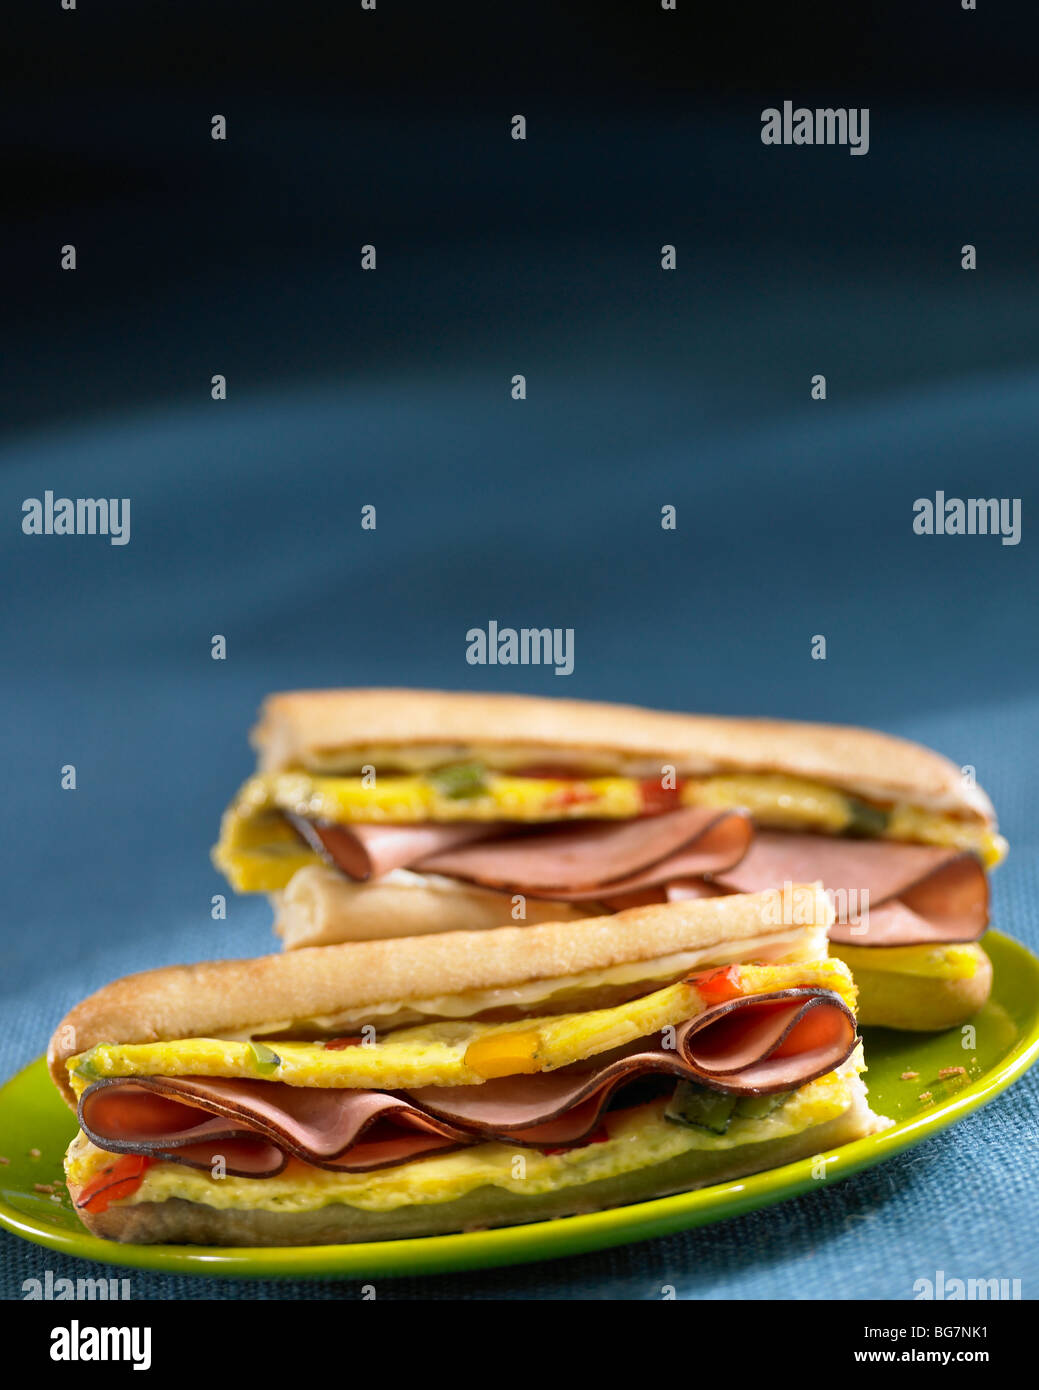 Ham and egg breakfast sandwiches on green plate - Stock Image